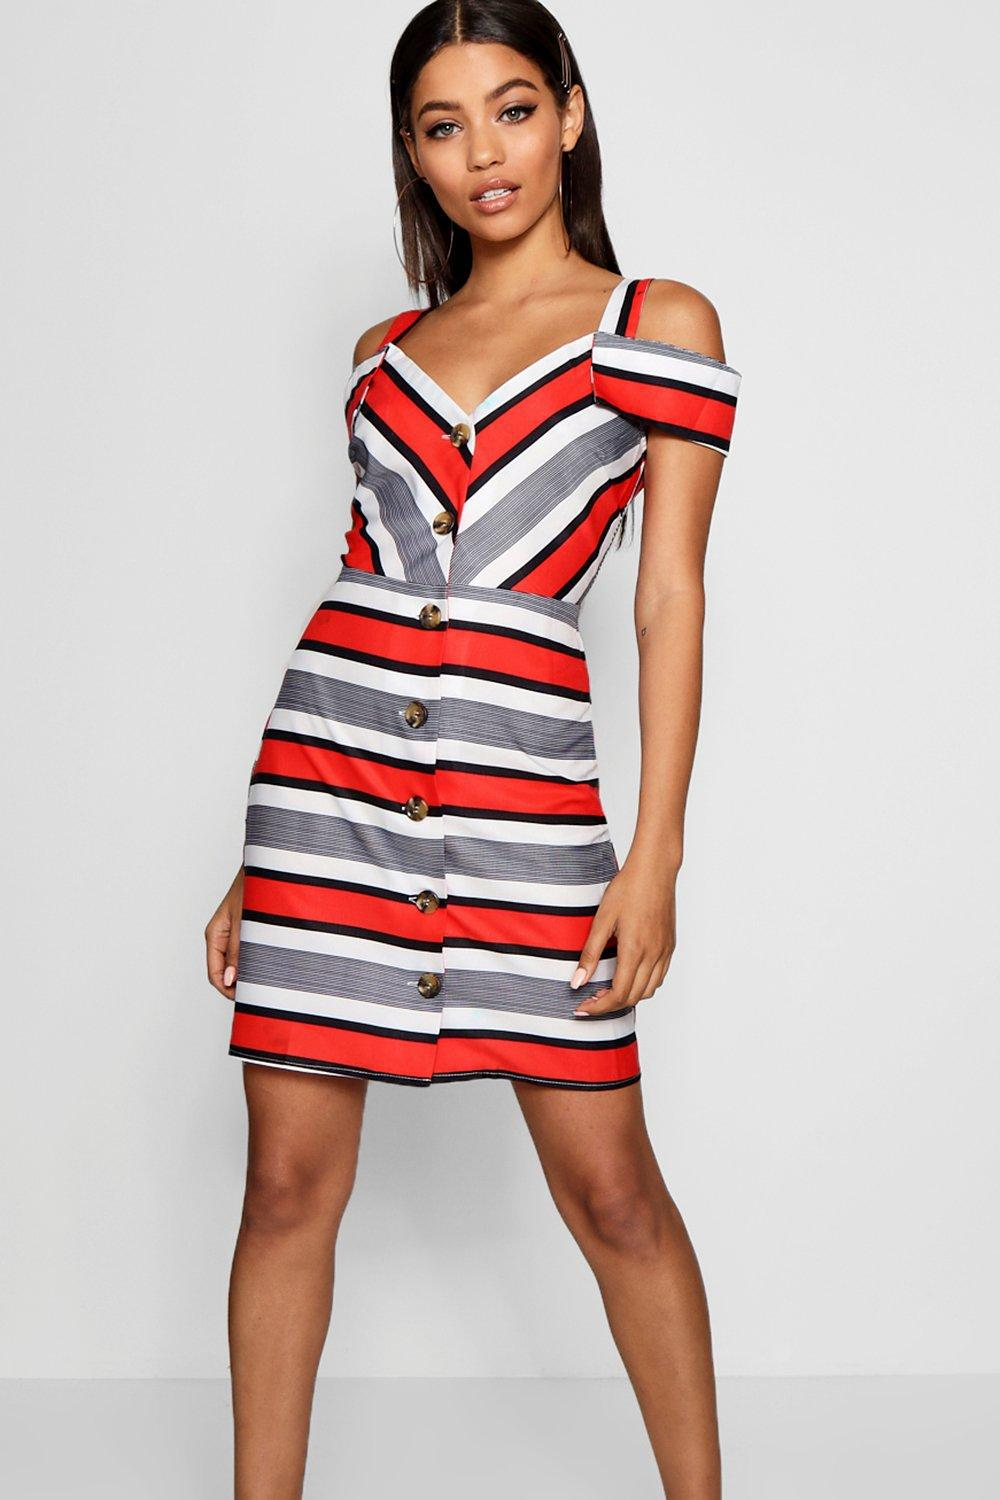 Boohoo Stripe Cold Shoulder Summer Dress in Red - Lyst d96483f4a